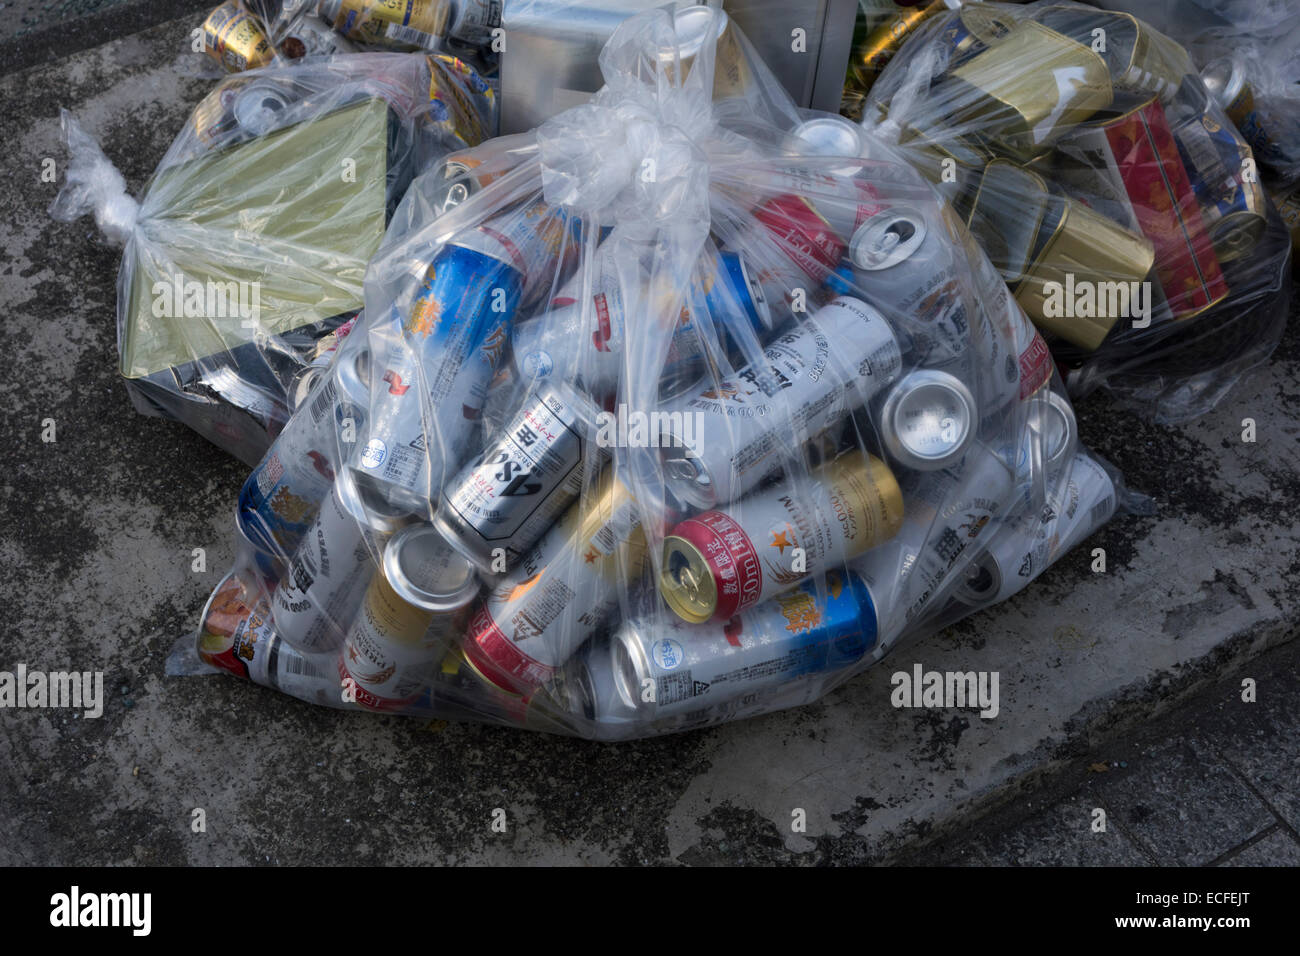 Cans awaiting collection in a Japanese city - Stock Image